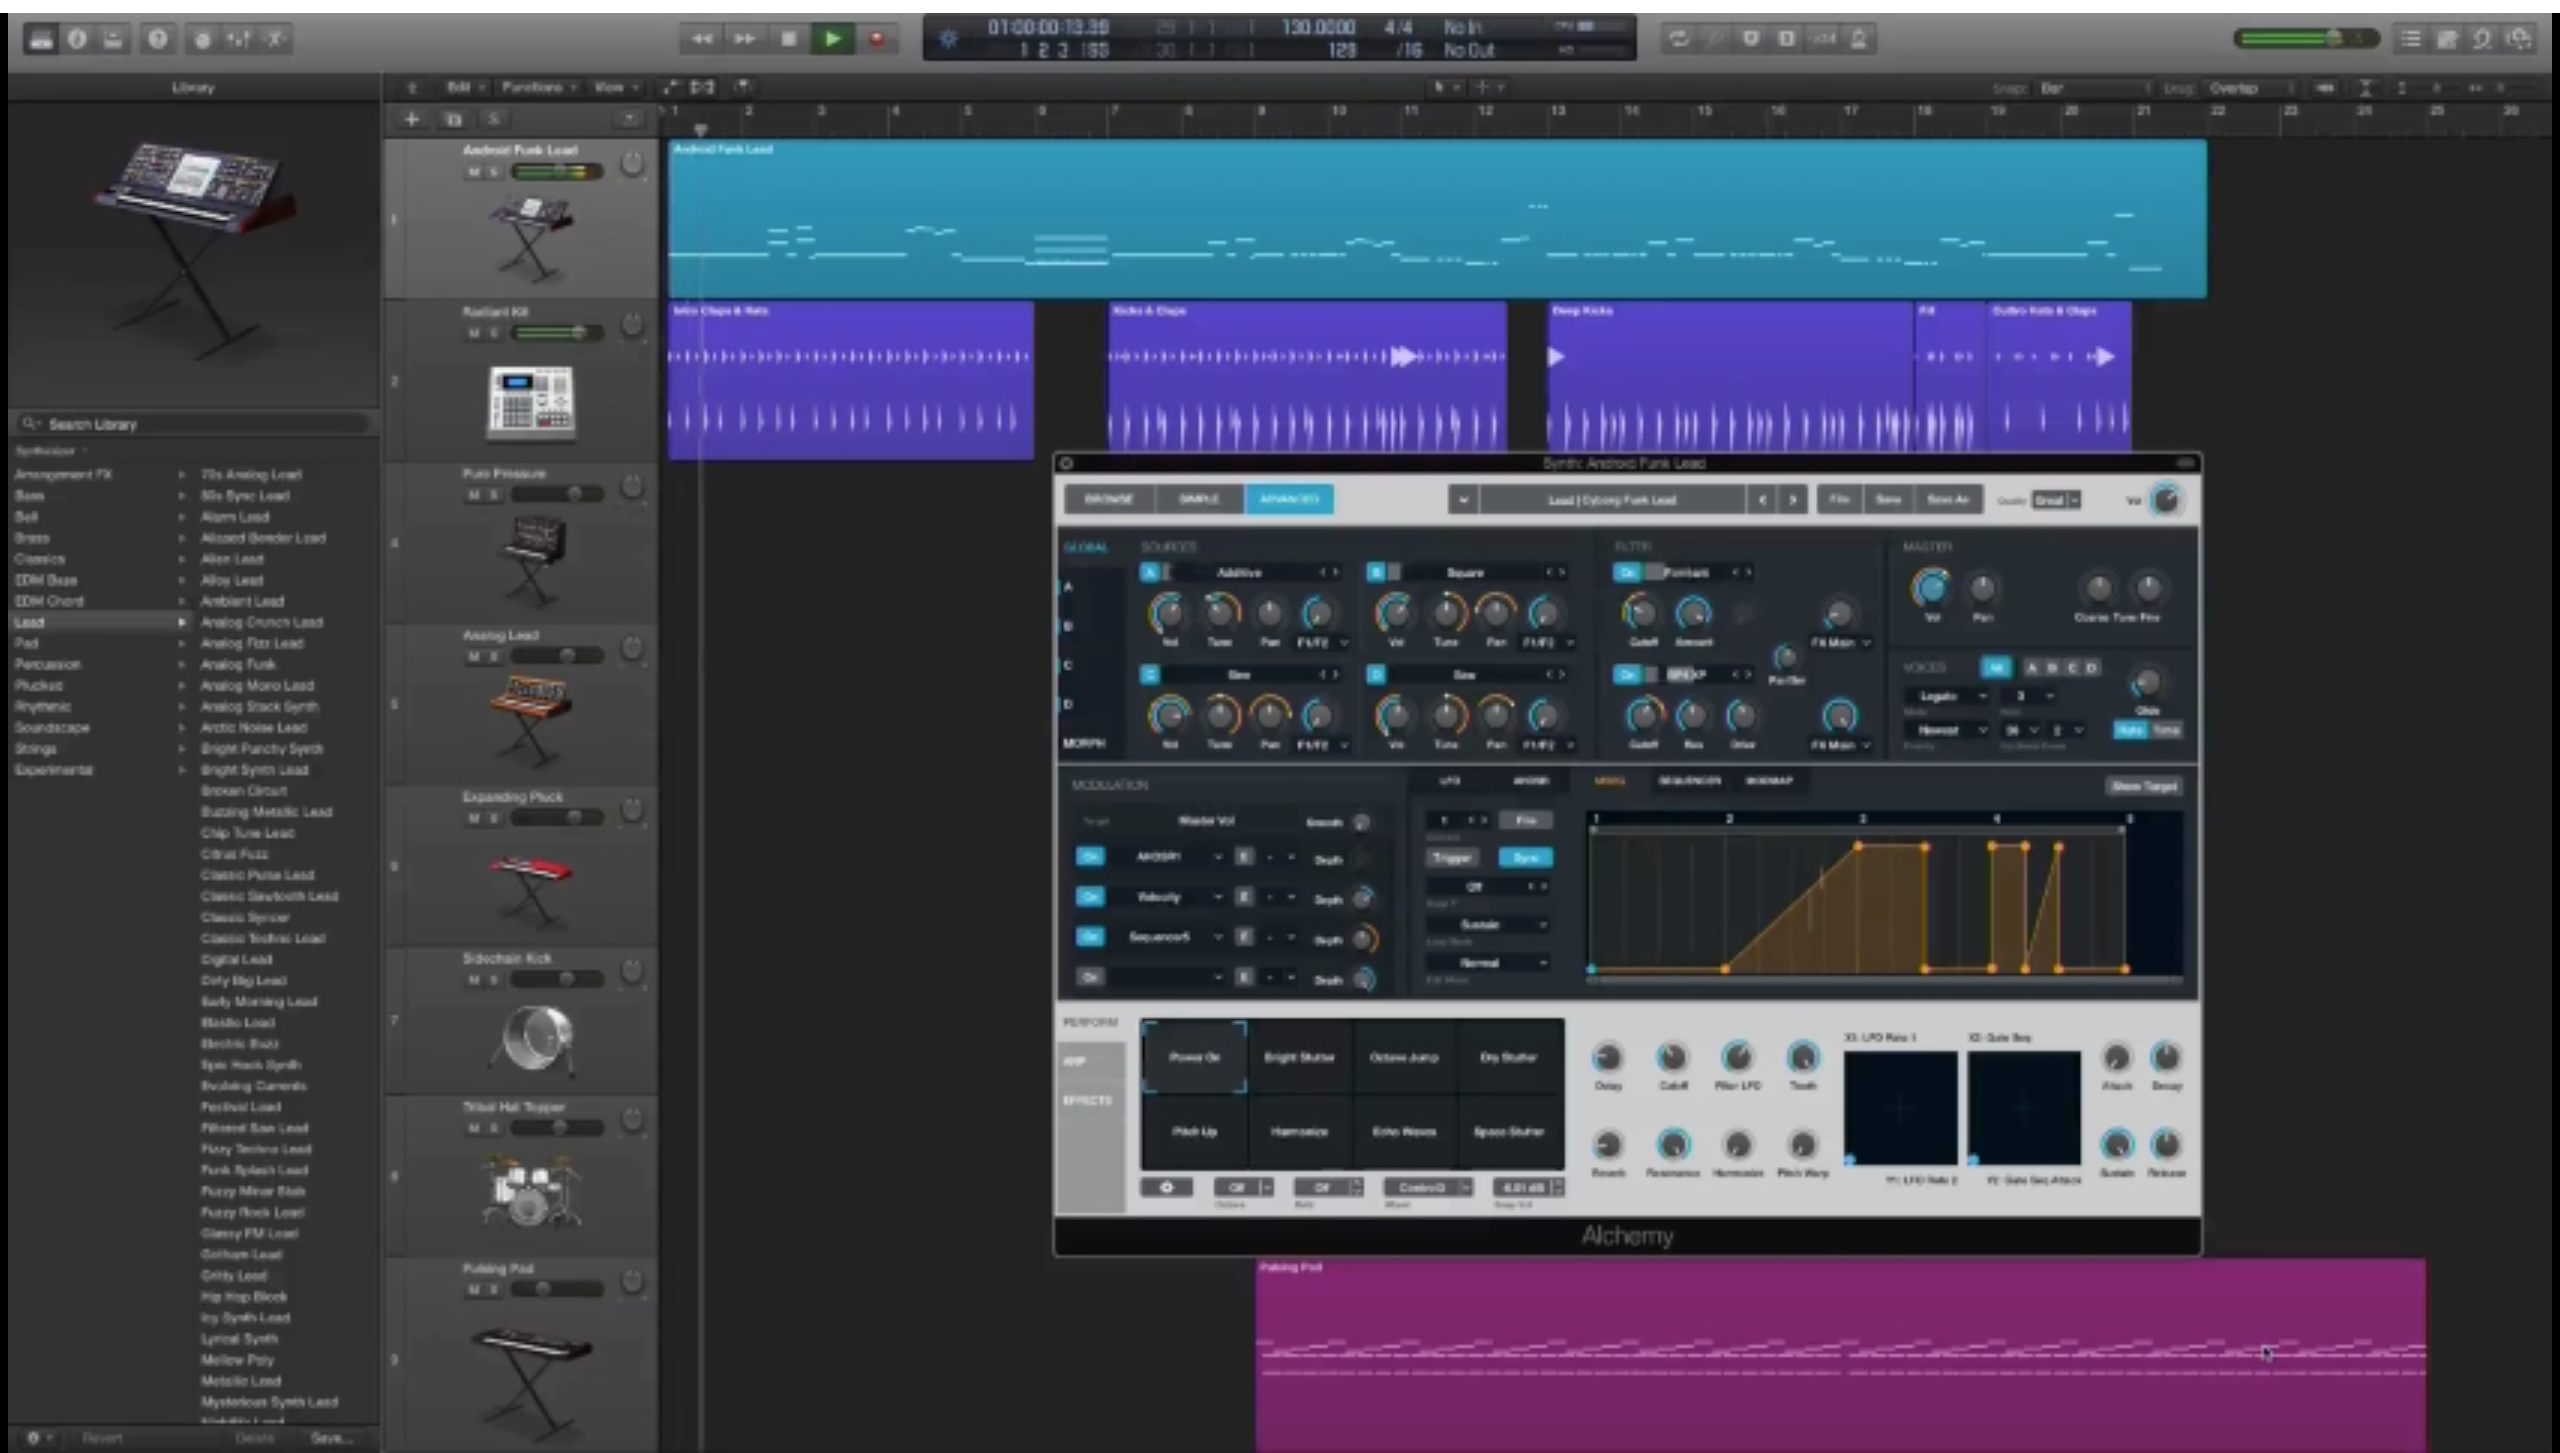 Logic Pro X Reviews 2019: Details, Pricing, & Features | G2